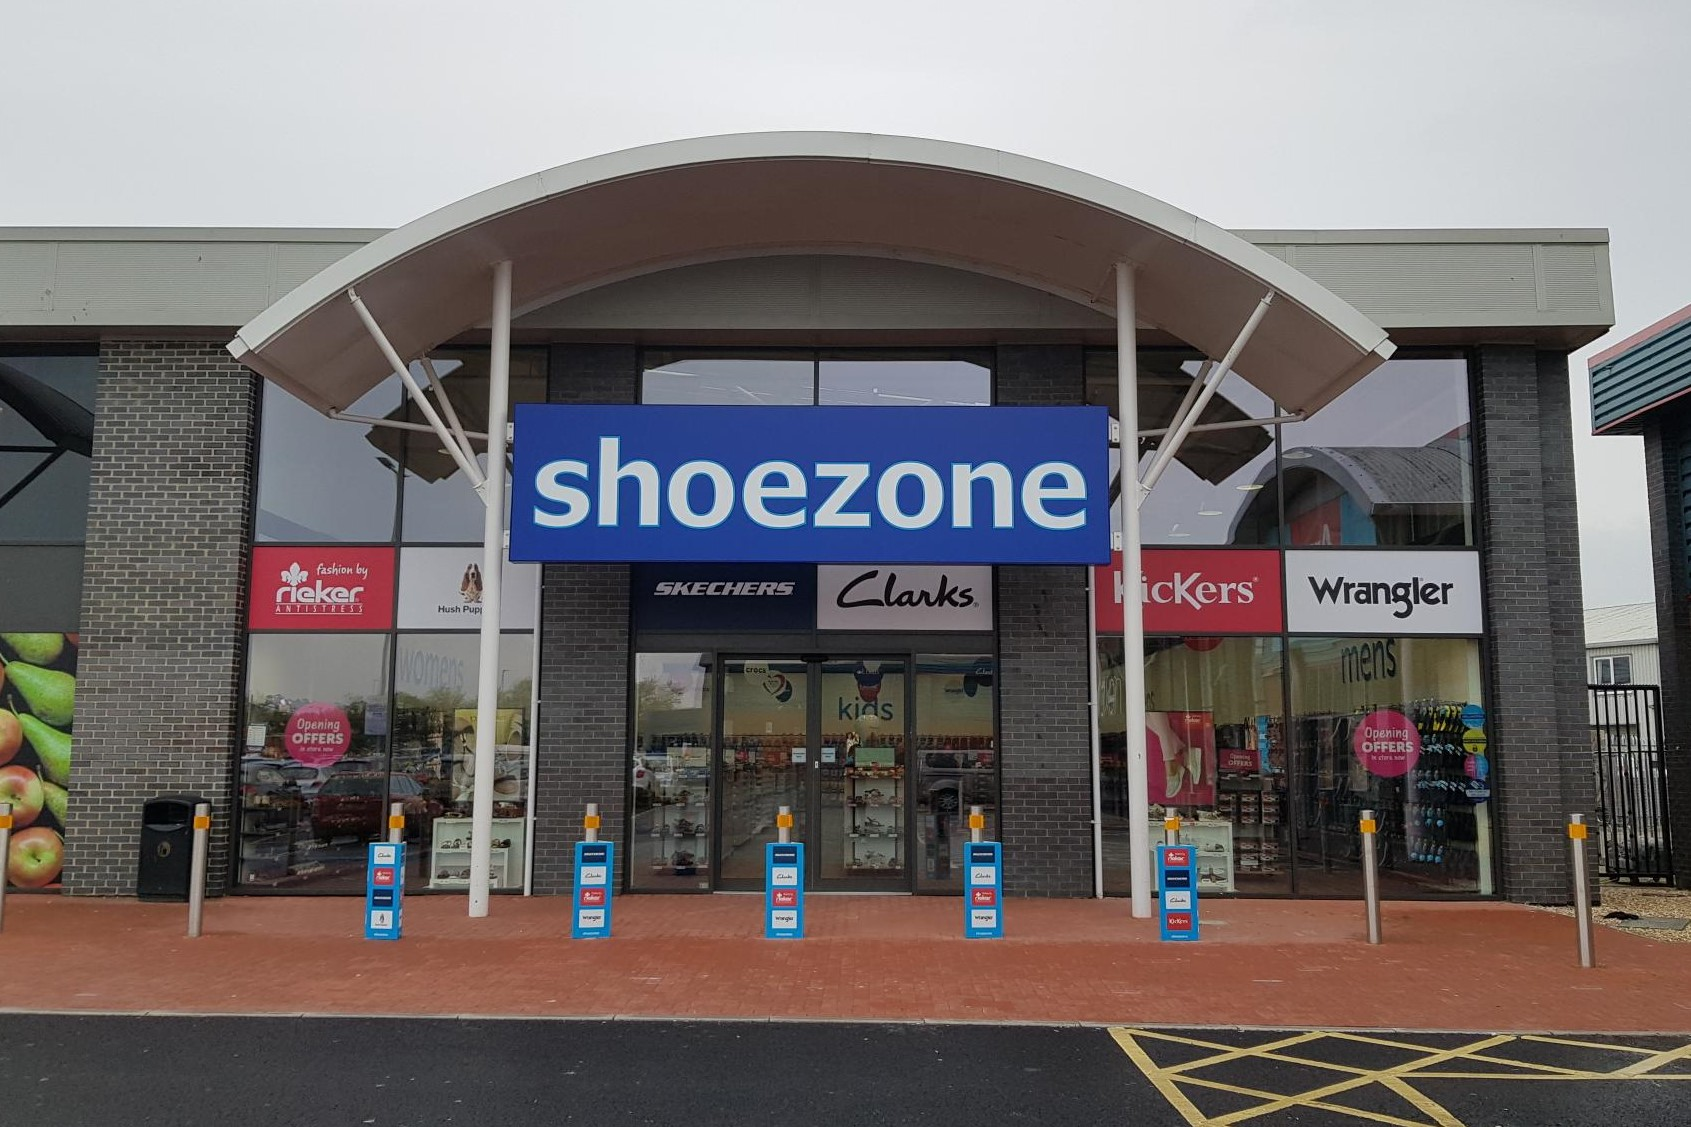 Rent reductions keep Shoe Zone competitive